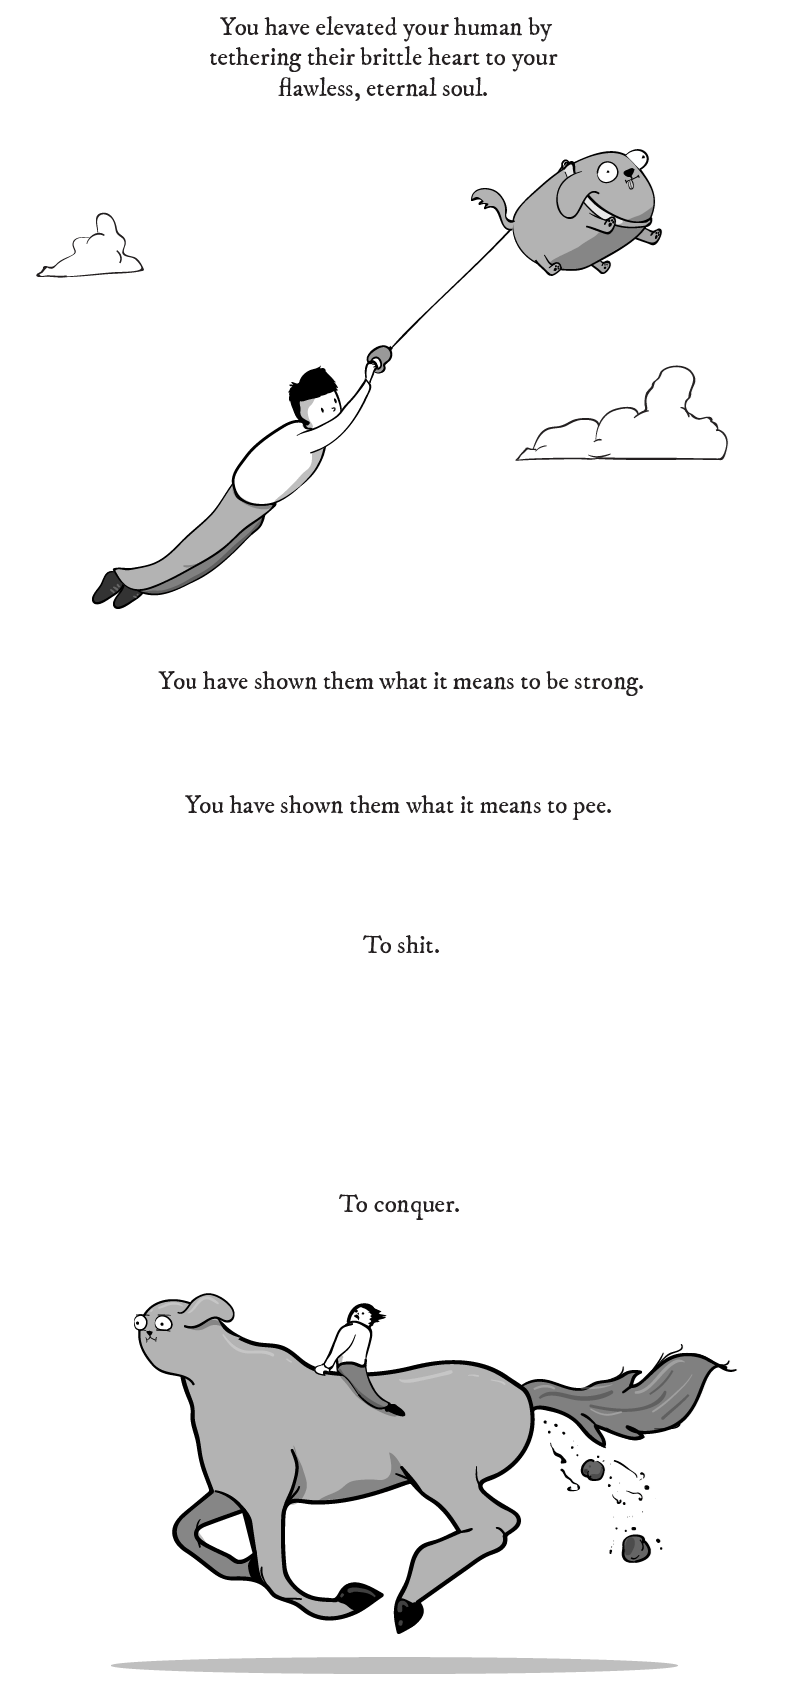 dog comic - Leg - You have elevated your human by tethering their brittle heart to your flawless, eternal soul. You have shown them what it means to be strong. You have shown them what it means to pee To shit To conquer.